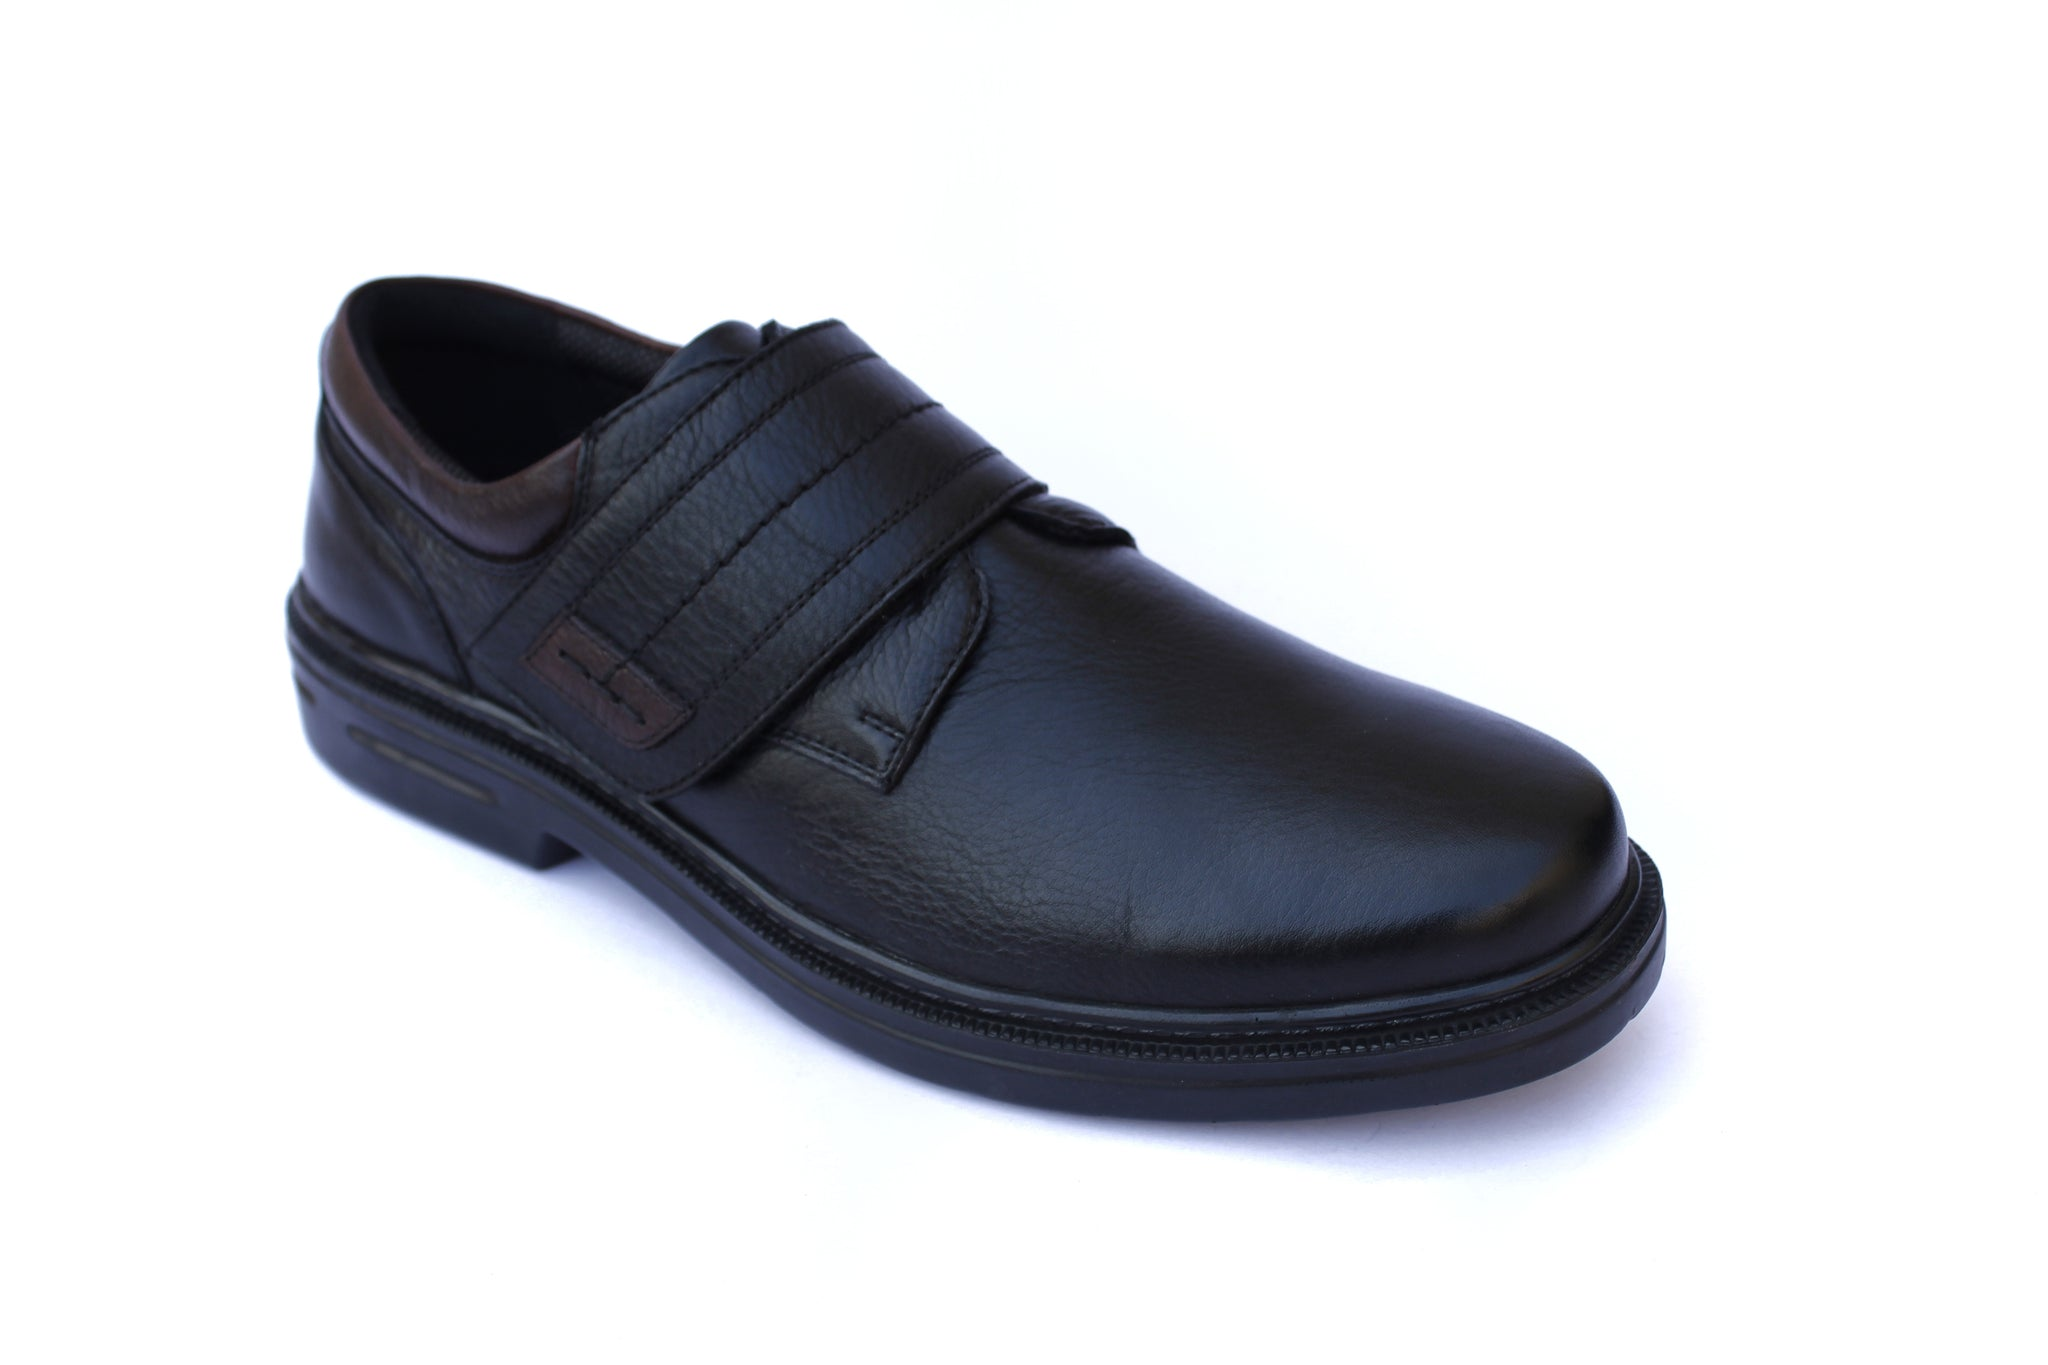 Overdrive 9 2 5 Notorious Formals with Velcro.